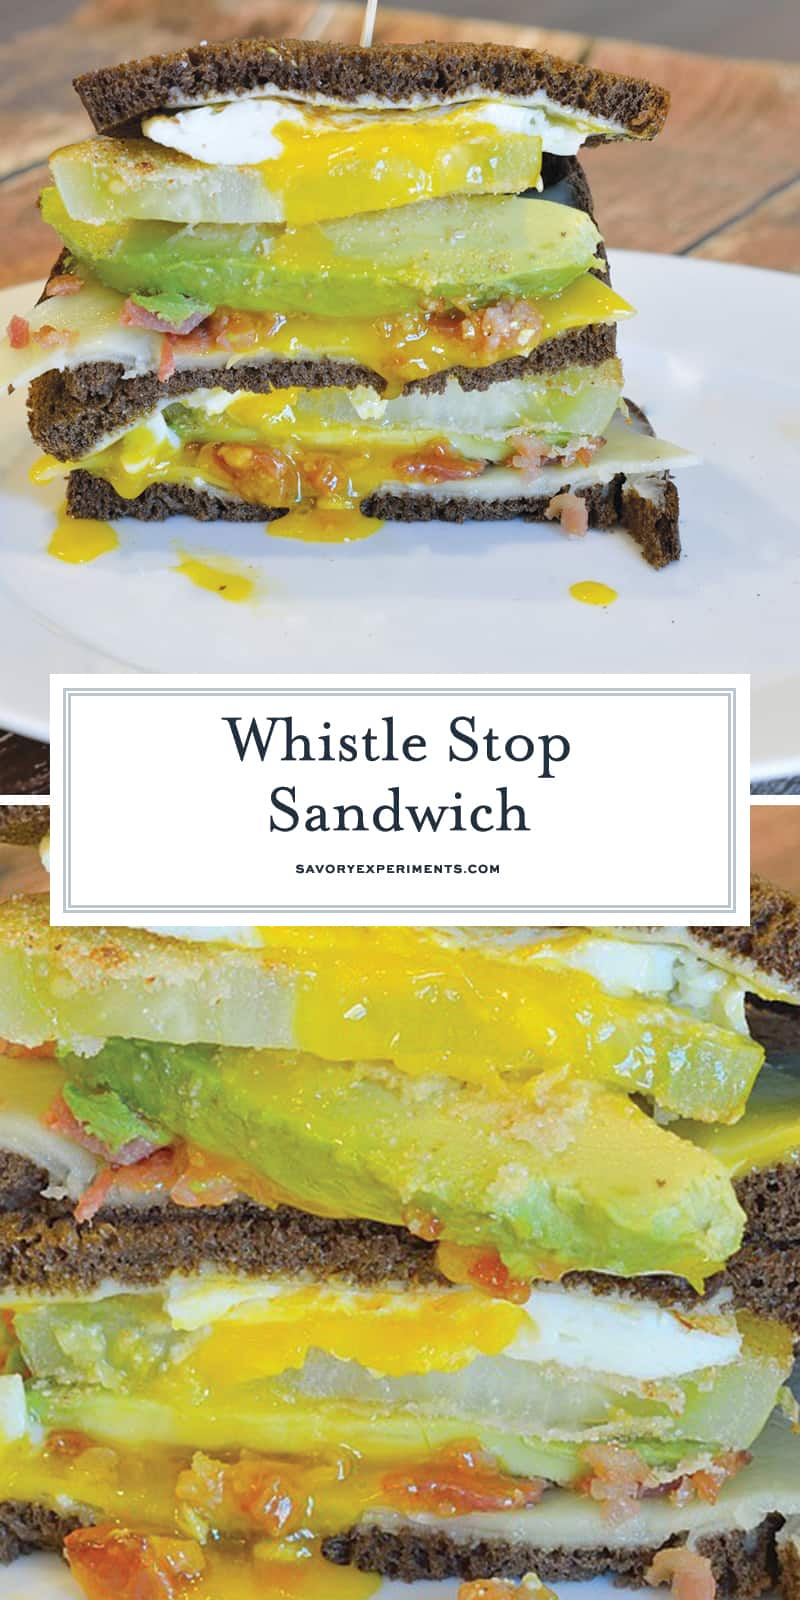 The Whistle Stop Sandwich is a fried drippy egg, avocado, cornmeal crusted green tomato, cheddar and bacon on soft pumpernickel. Crunchy, creamy, sweet and savory. #tomatosandwich www.savoryexperiments.com